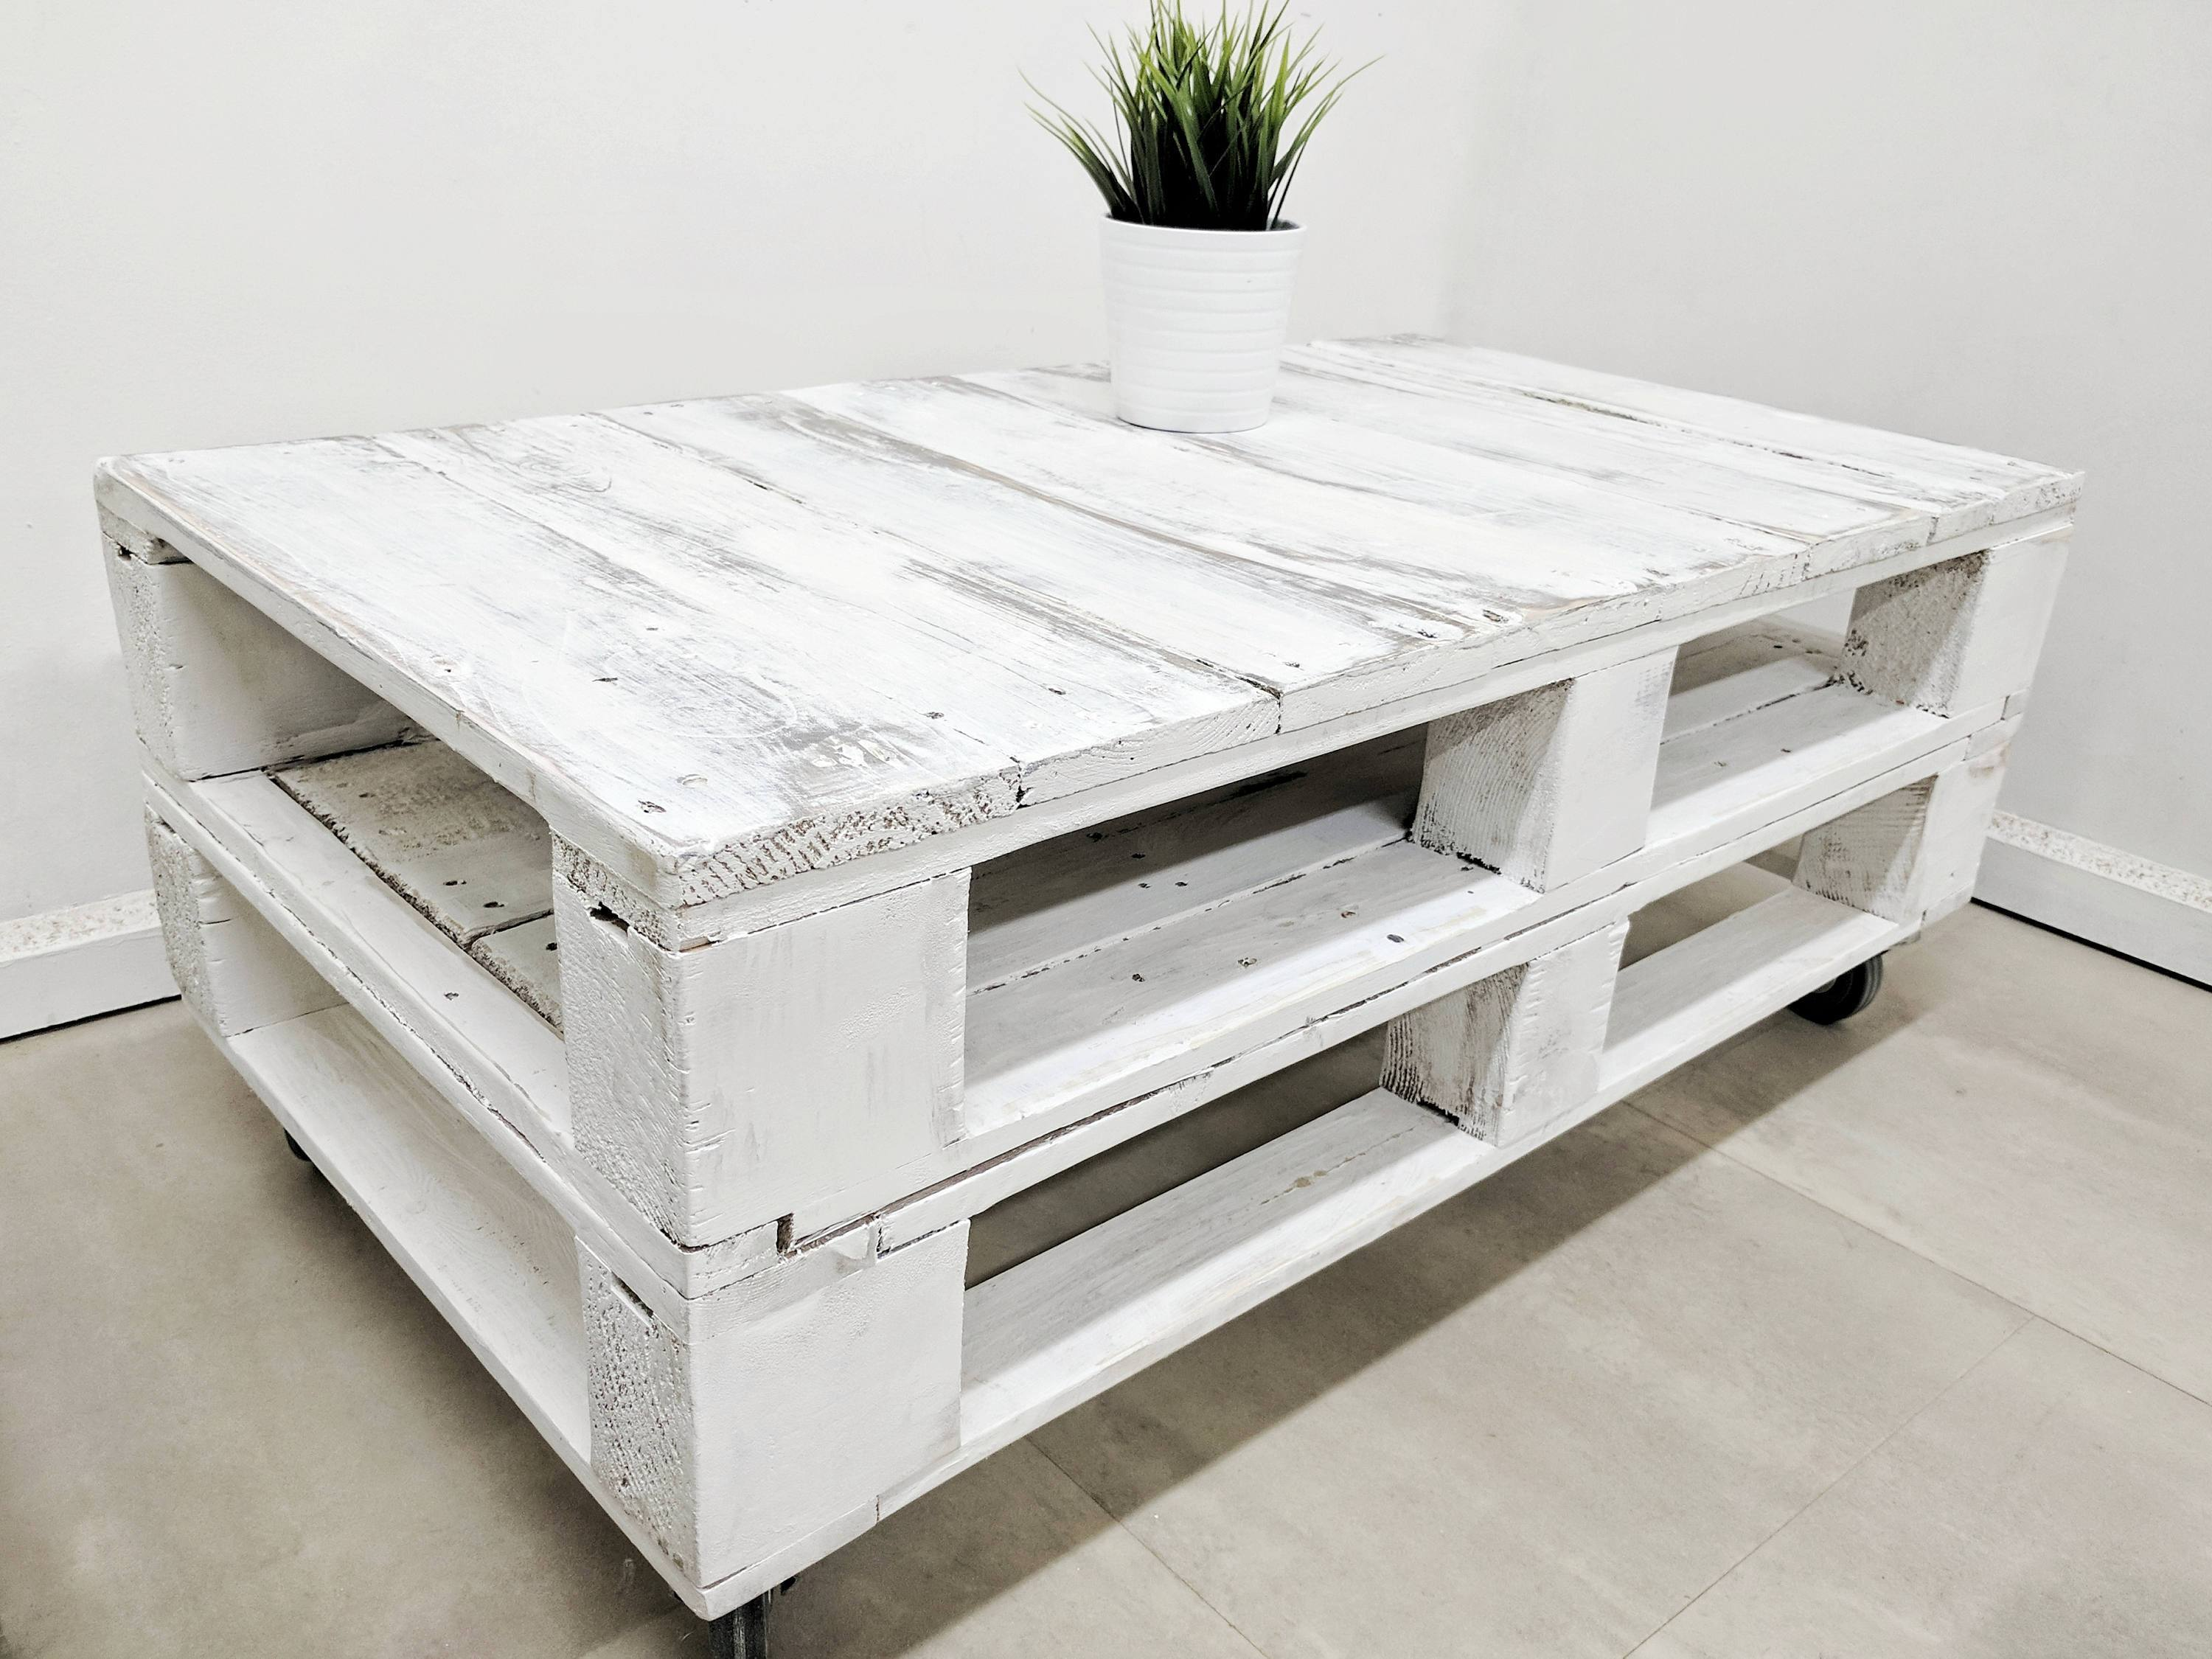 Distressed Pallet Coffee Table Lemmik In Aged White Finish Made Of